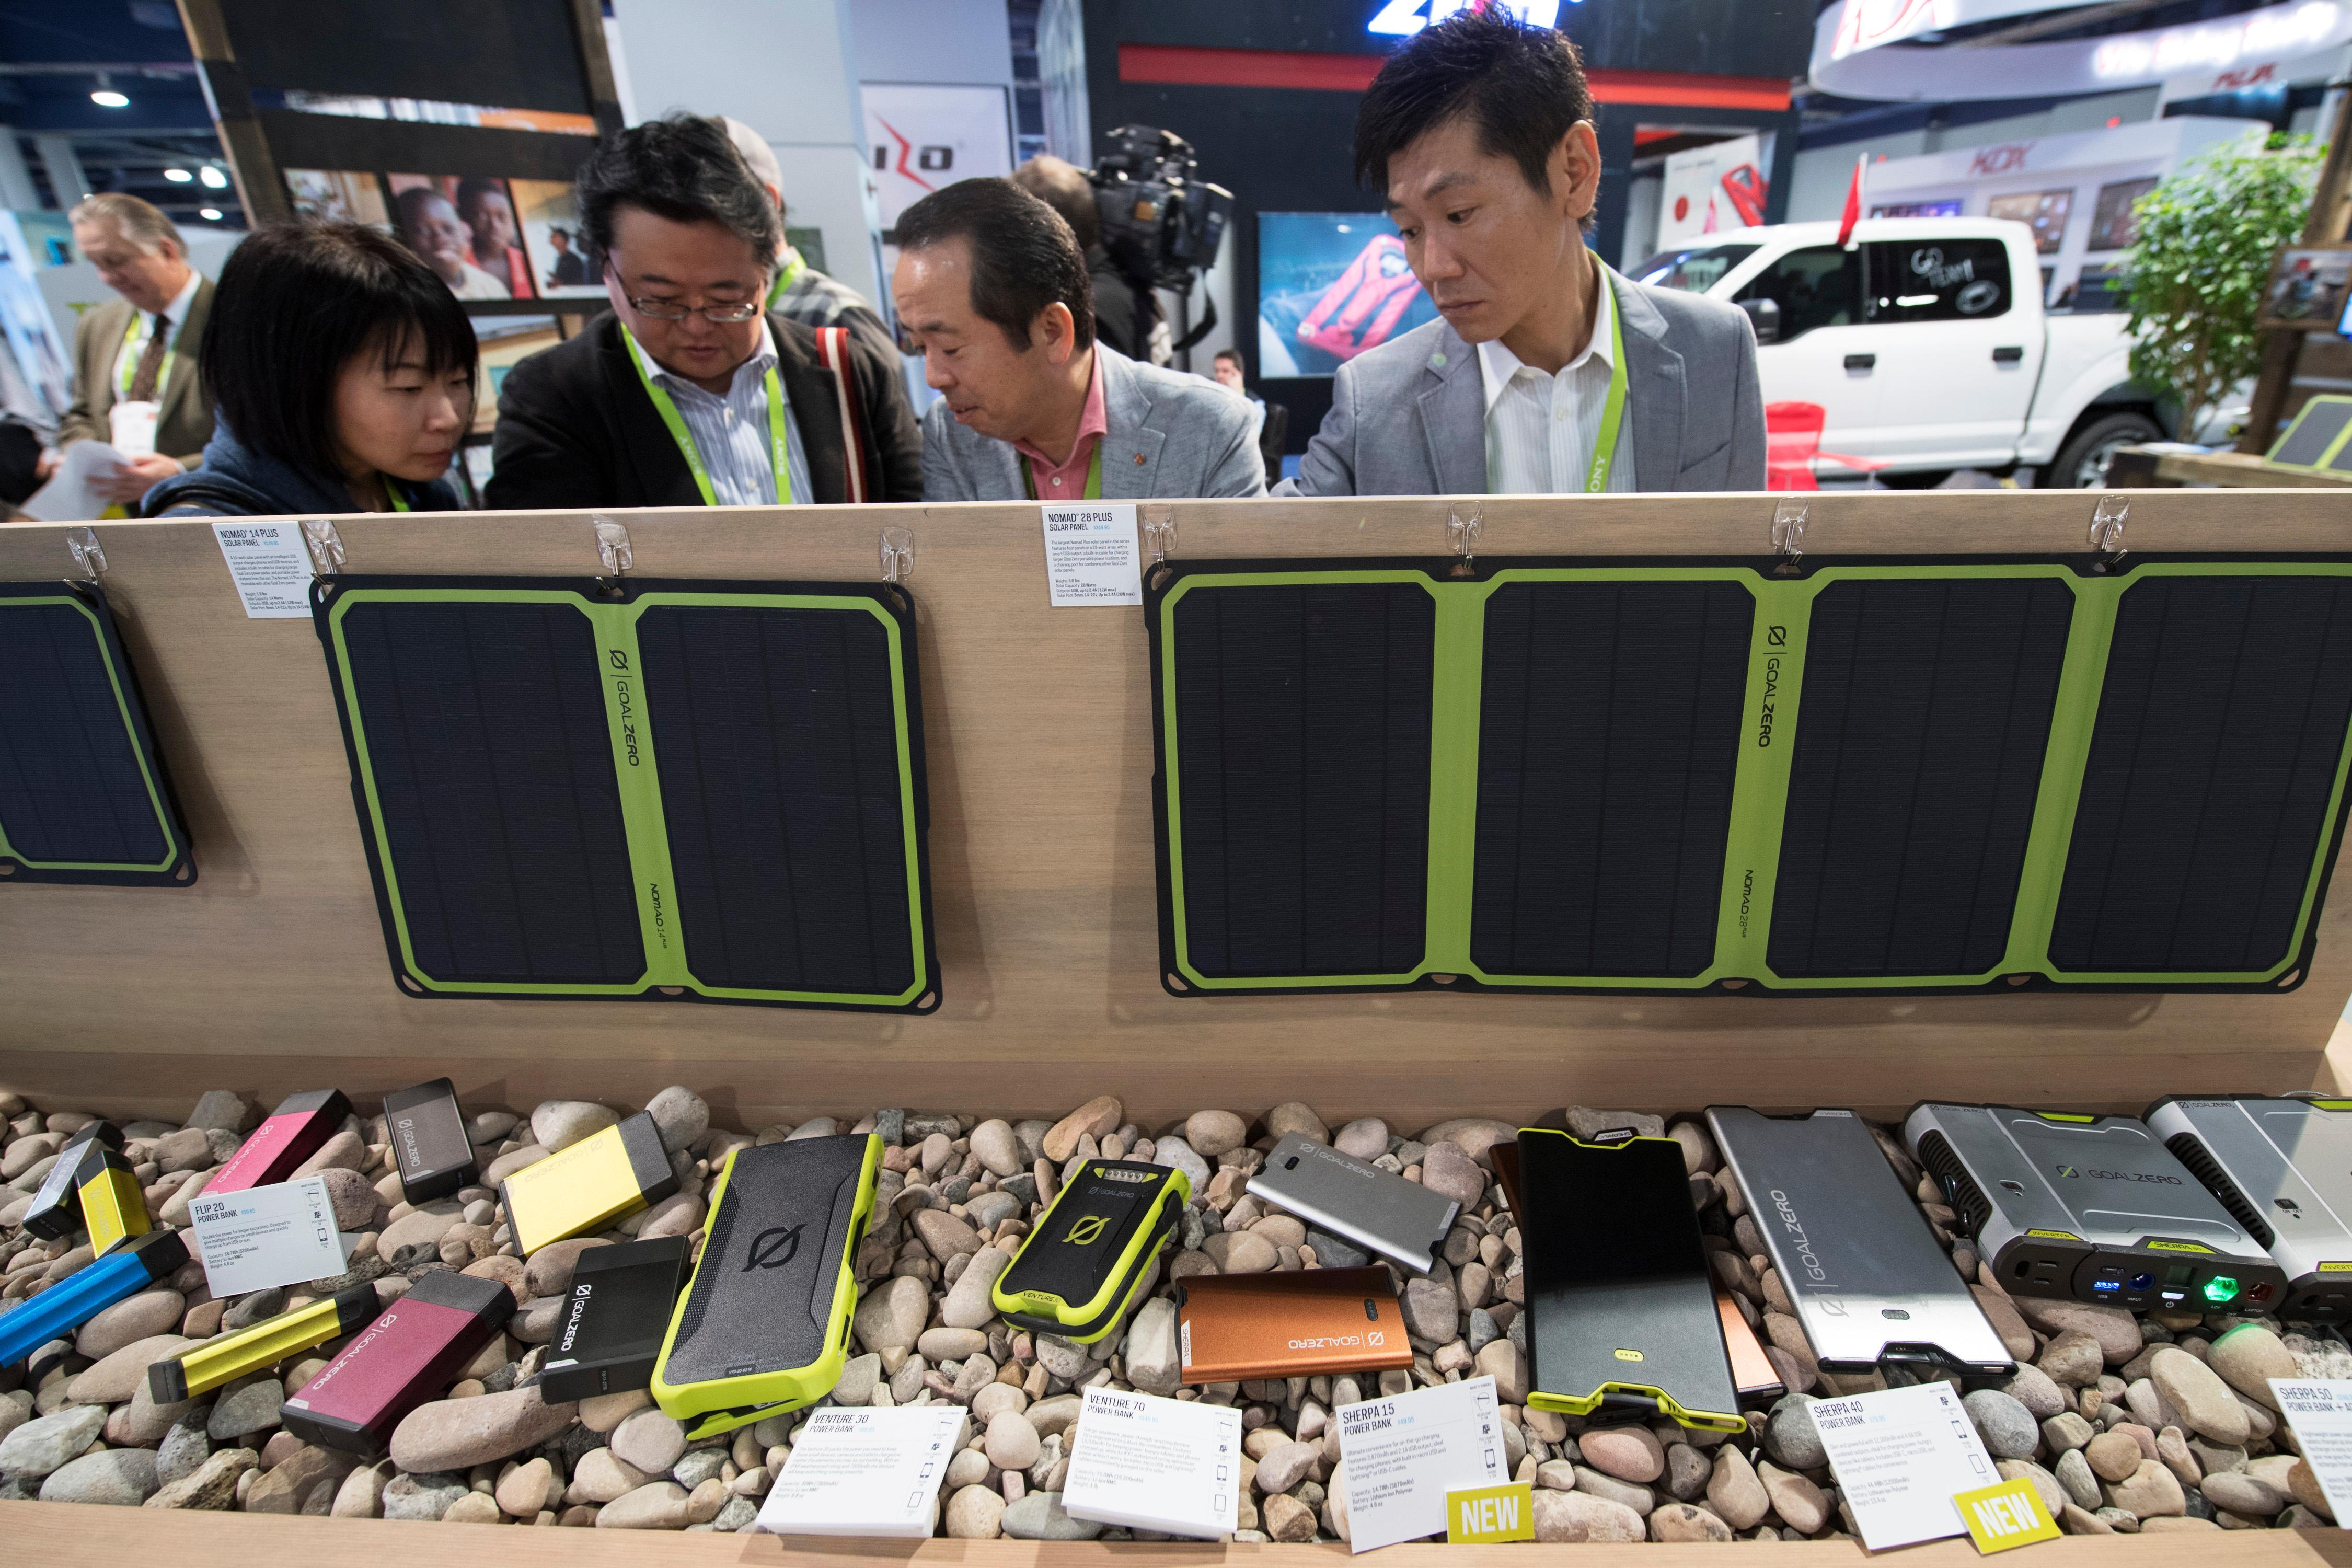 Attendees check out portable solar panels during the second day of CES Wednesday, January 10, 2018, at the Las Vegas Convention Center. CREDIT: Sam Morris/Las Vegas News Bureau